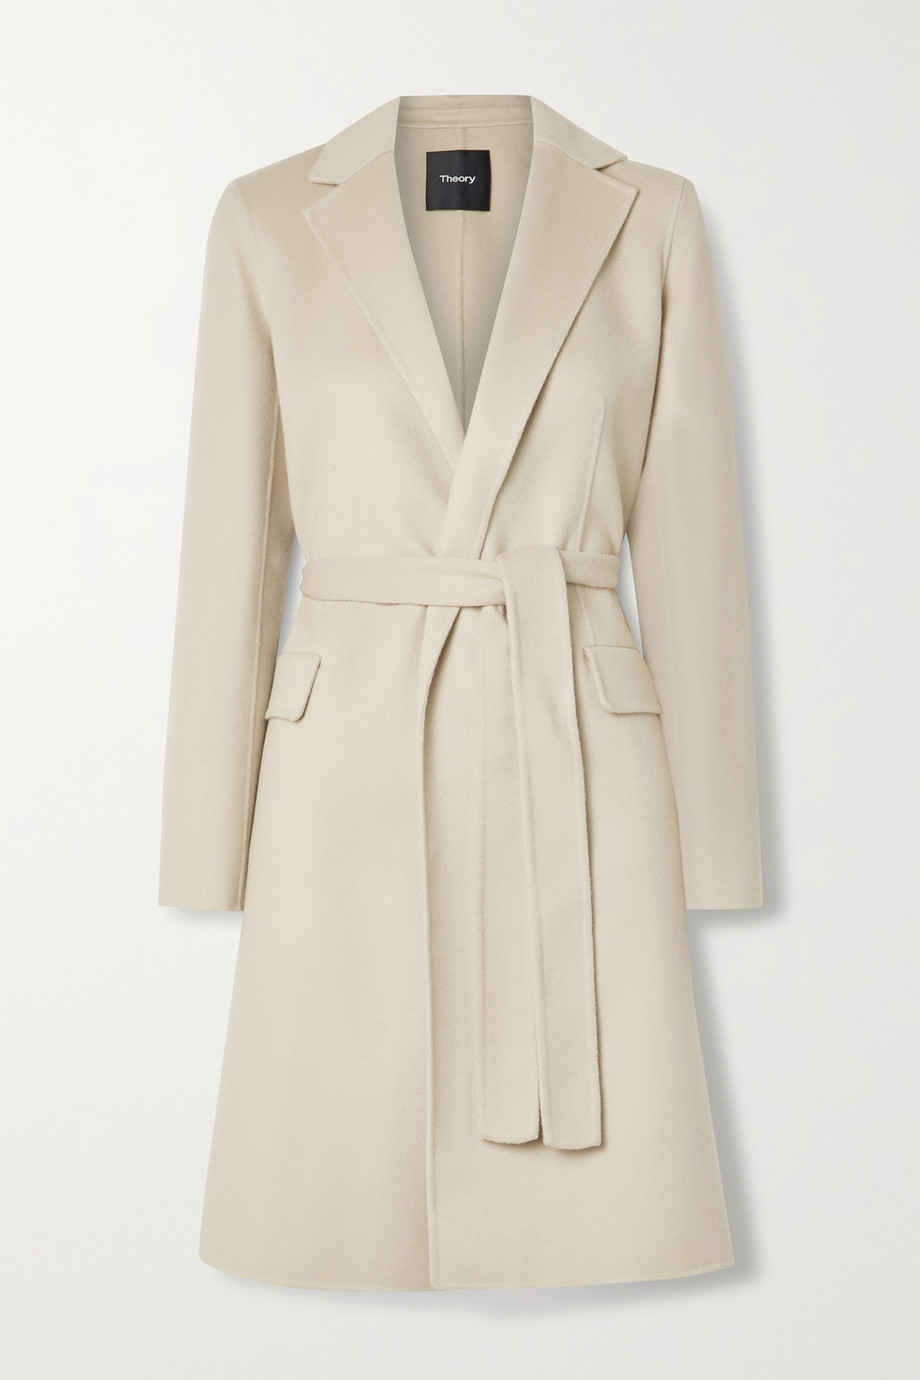 Theory New Divide belted wool and cashmere-blend coat